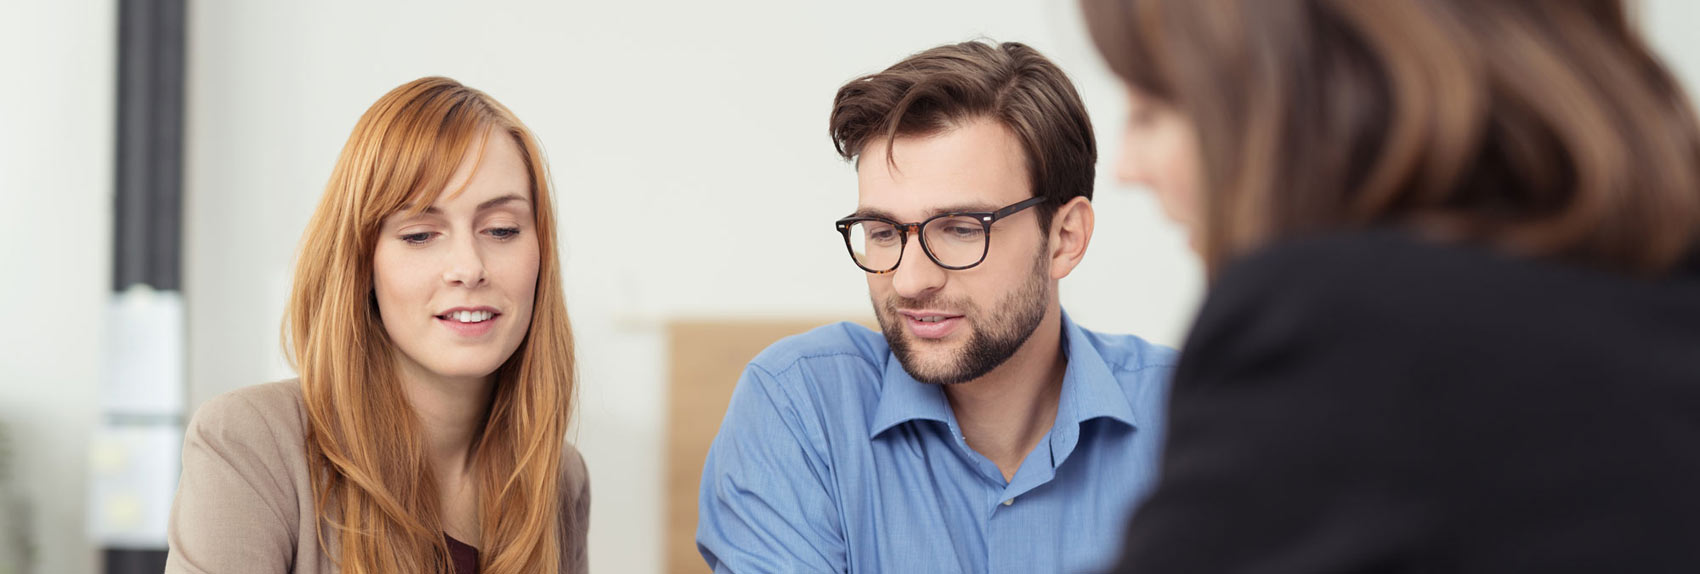 A happy young couple in bright room listening to professional woman in suit